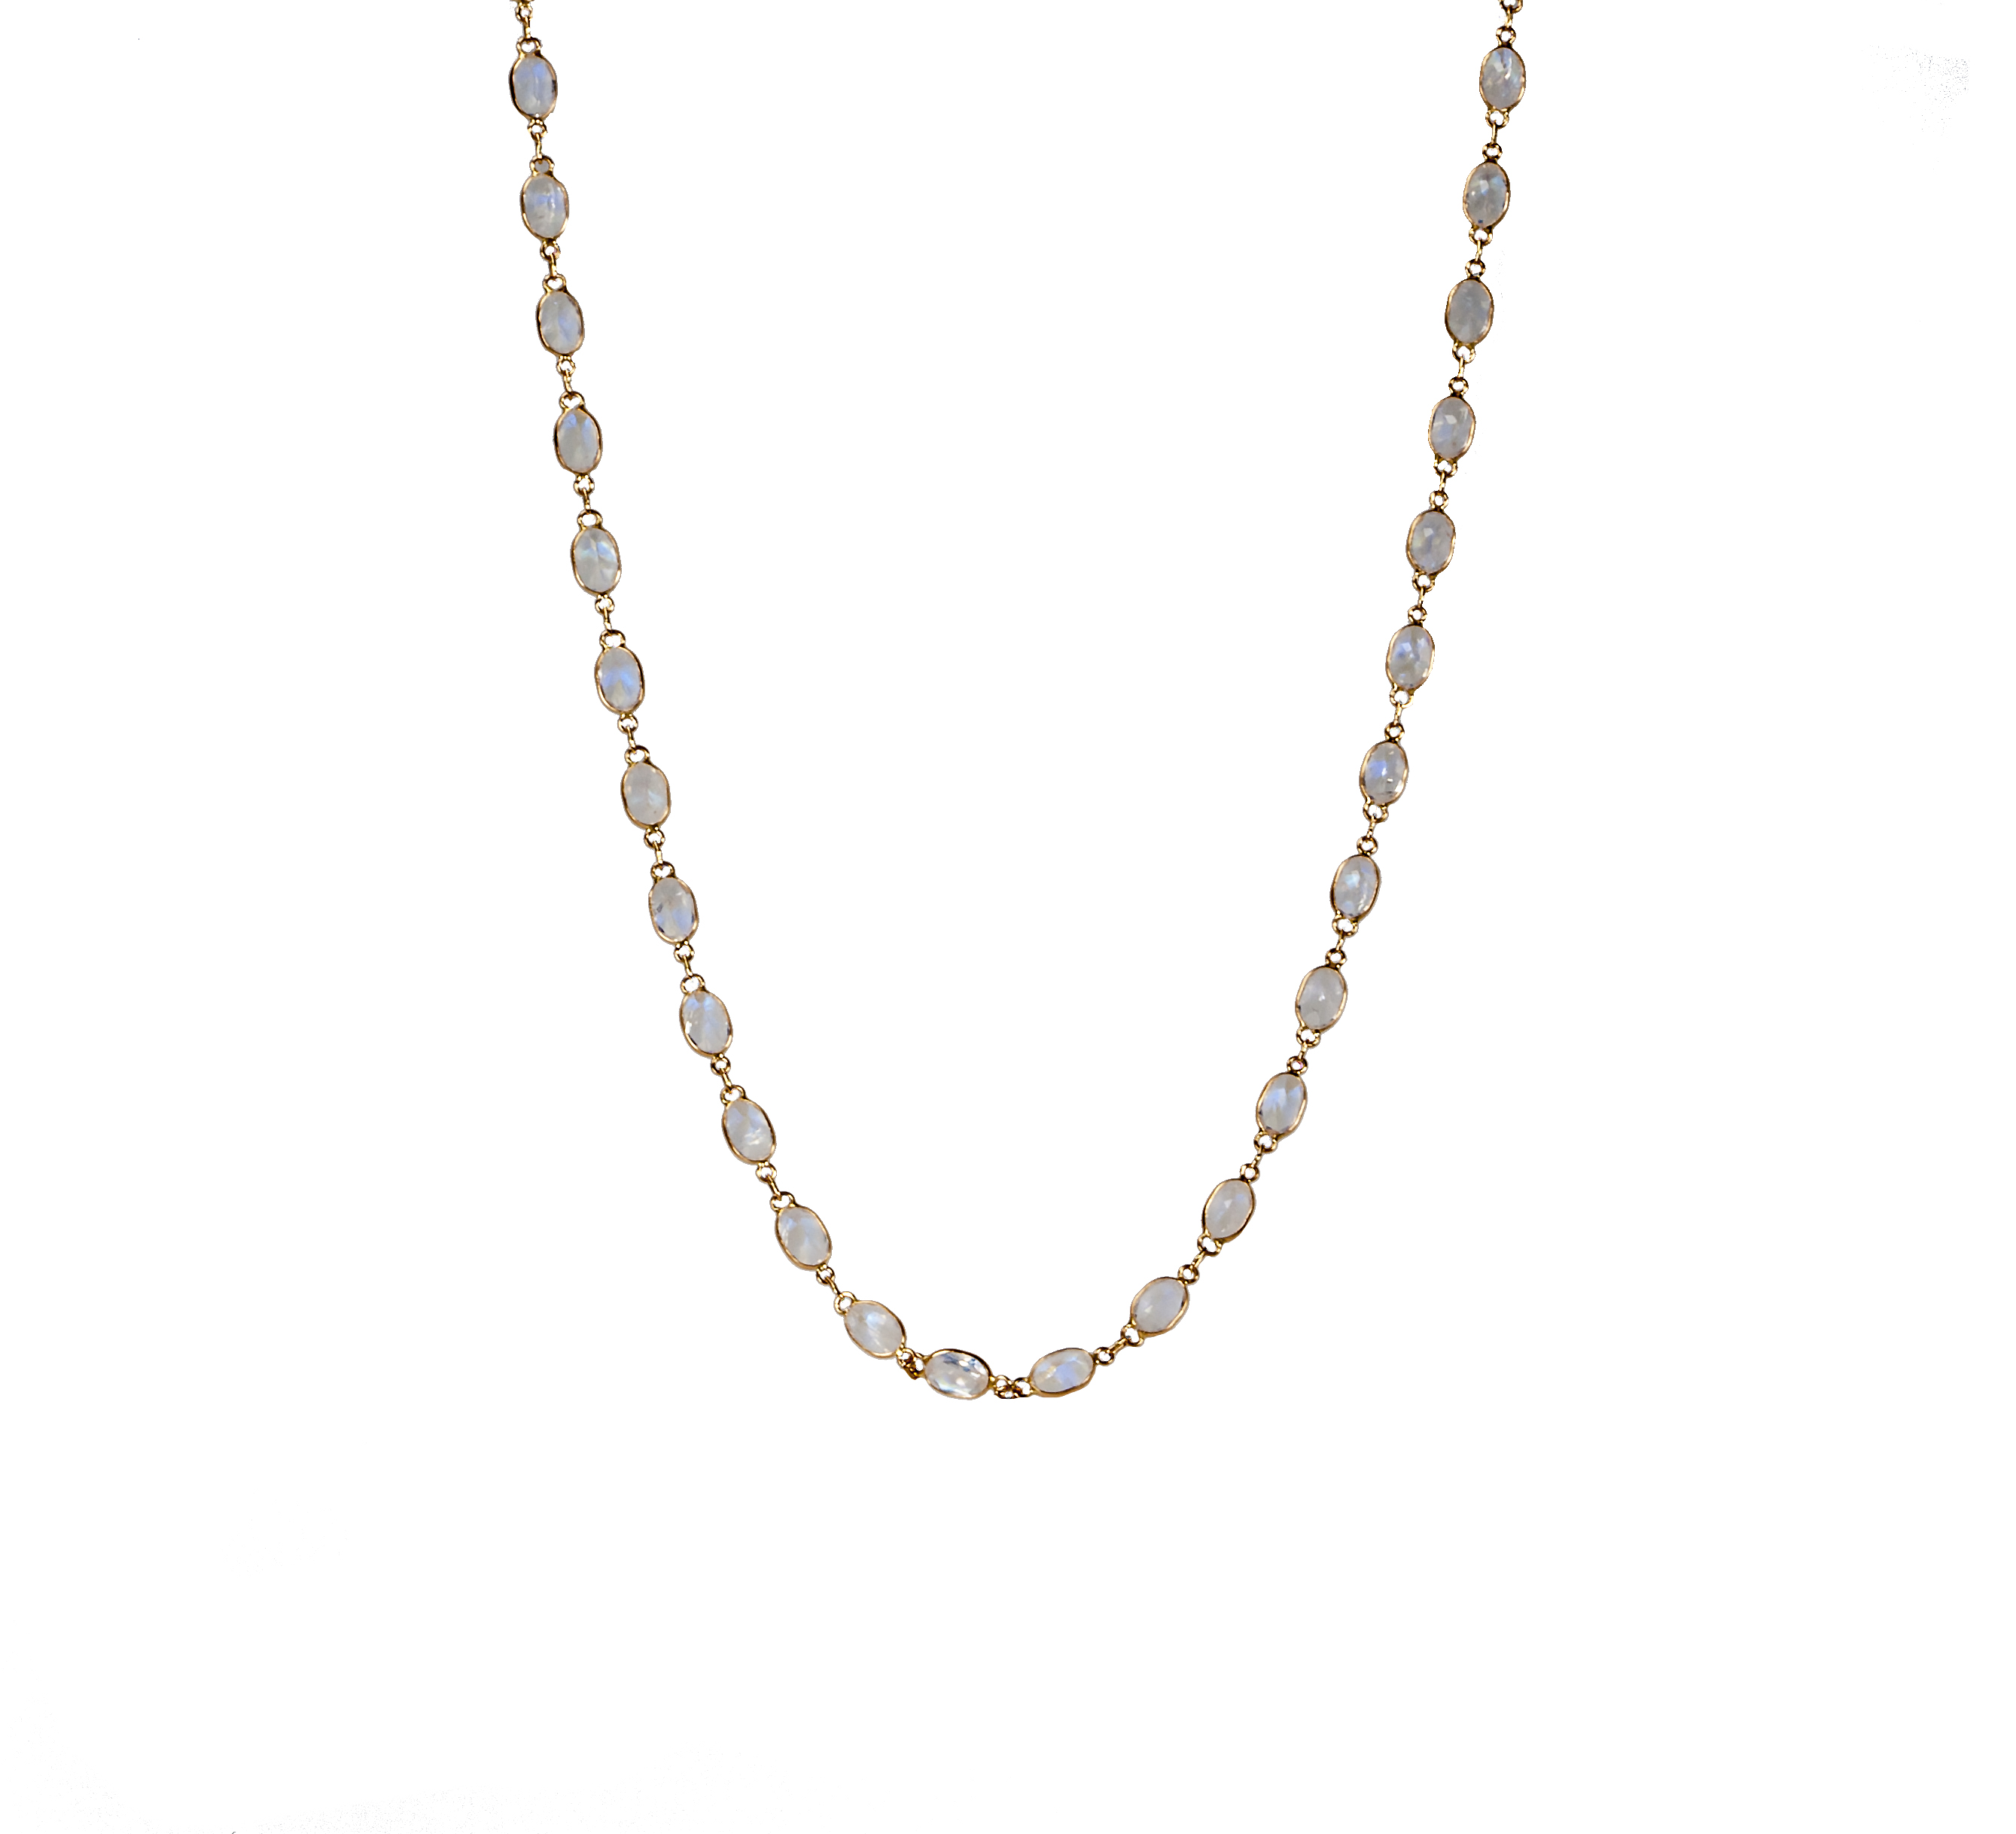 Rainbow moonstone link necklace in 18-karat rose gold